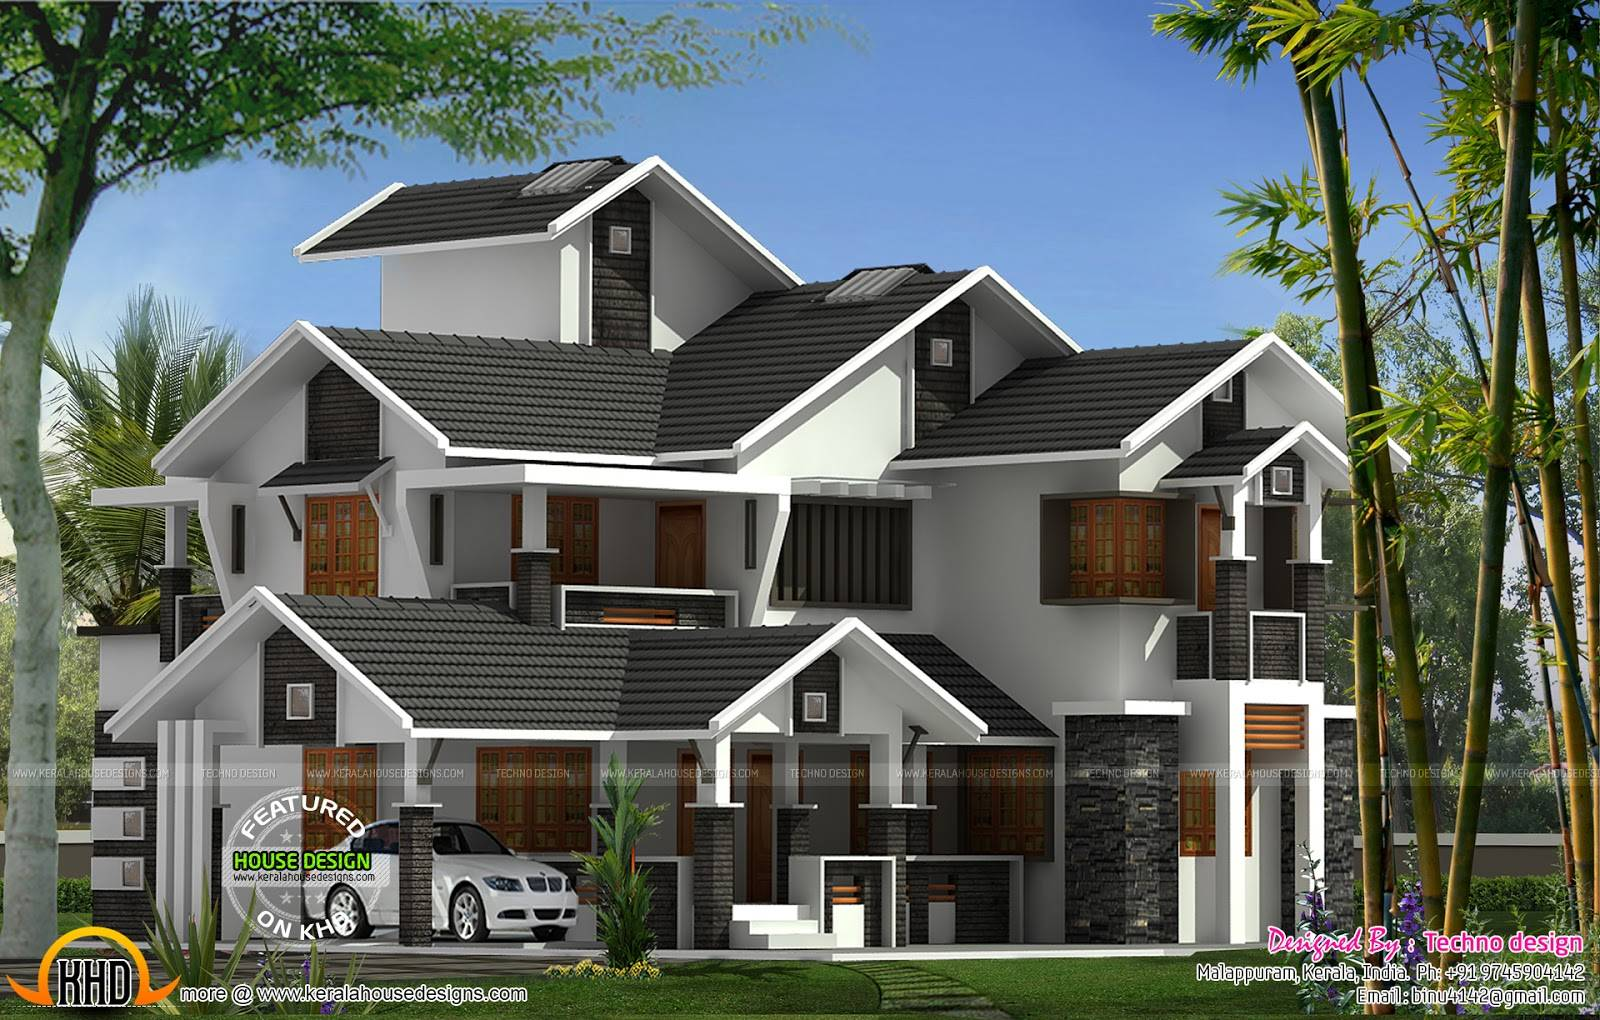 Modern Flat Roof House Keralahousedesigns Home Plans Blueprints 162627